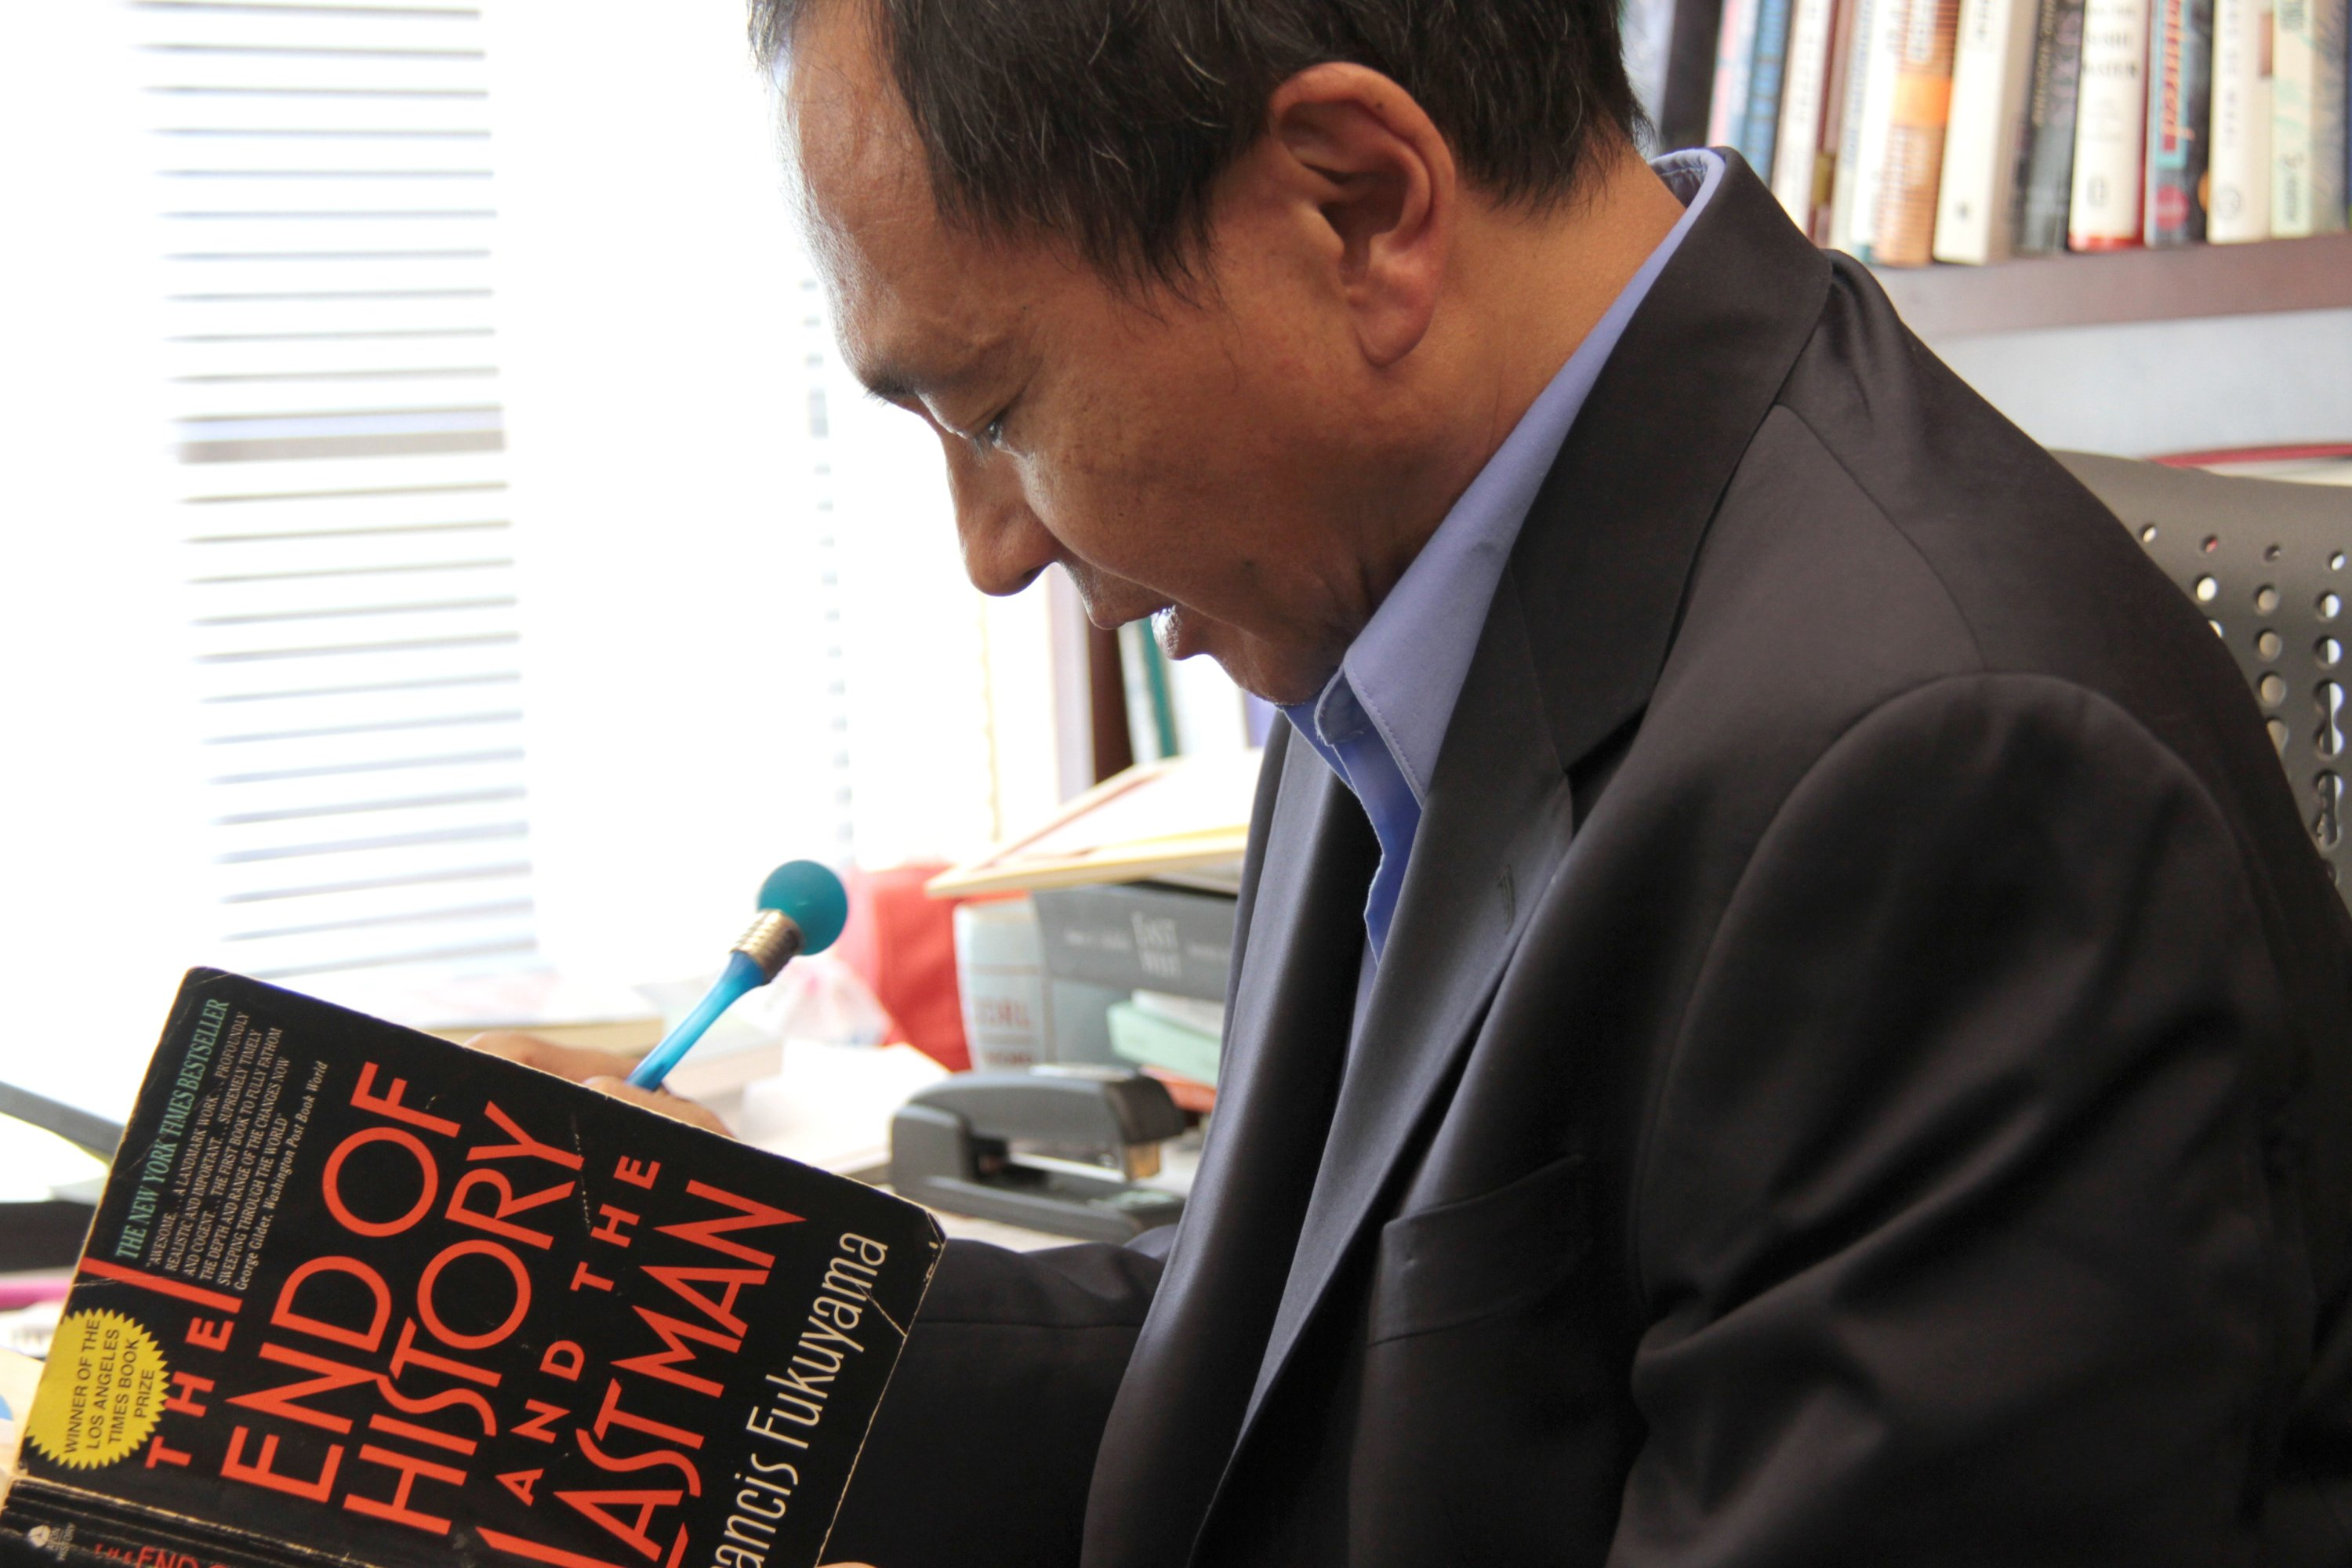 Francis Fukuyama holds his famous book 'The End of History and the Last Man' while speaking during an interview at a class in Stanford University, California, U.S., Aug. 9, 2011. (Reuters Photo)